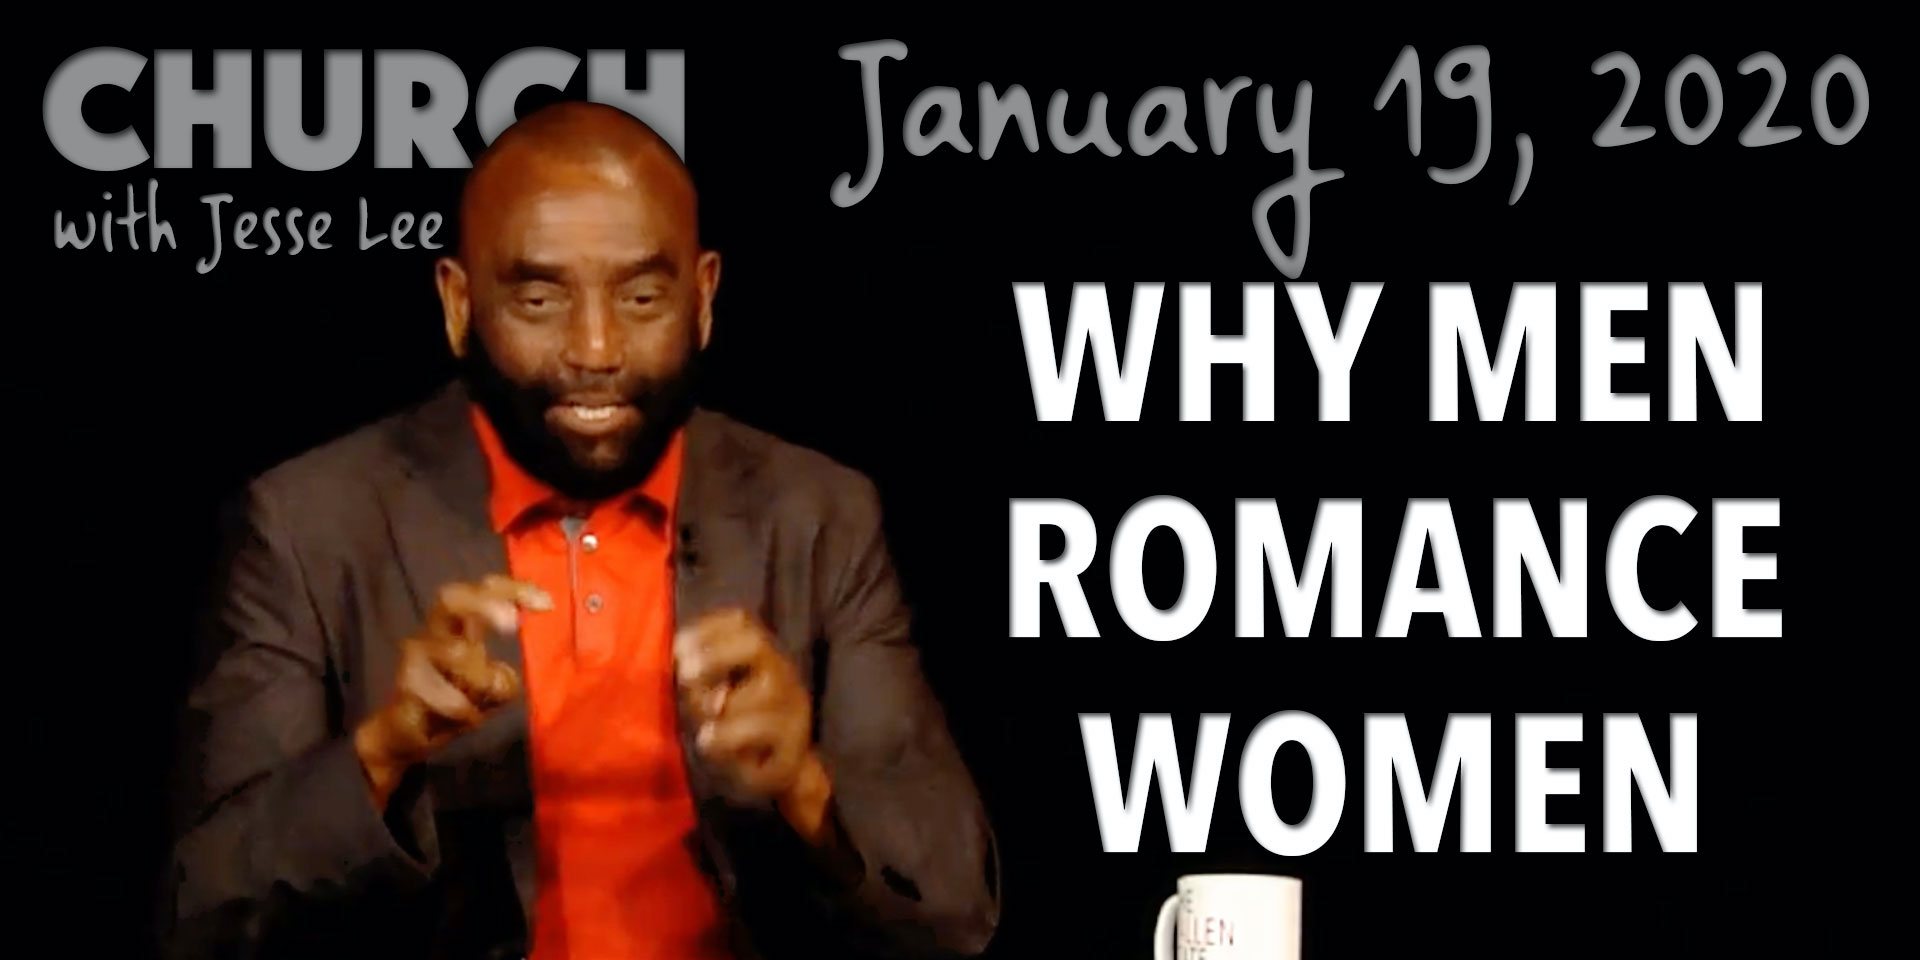 Why Men Romance Women (Church 1/19/20)